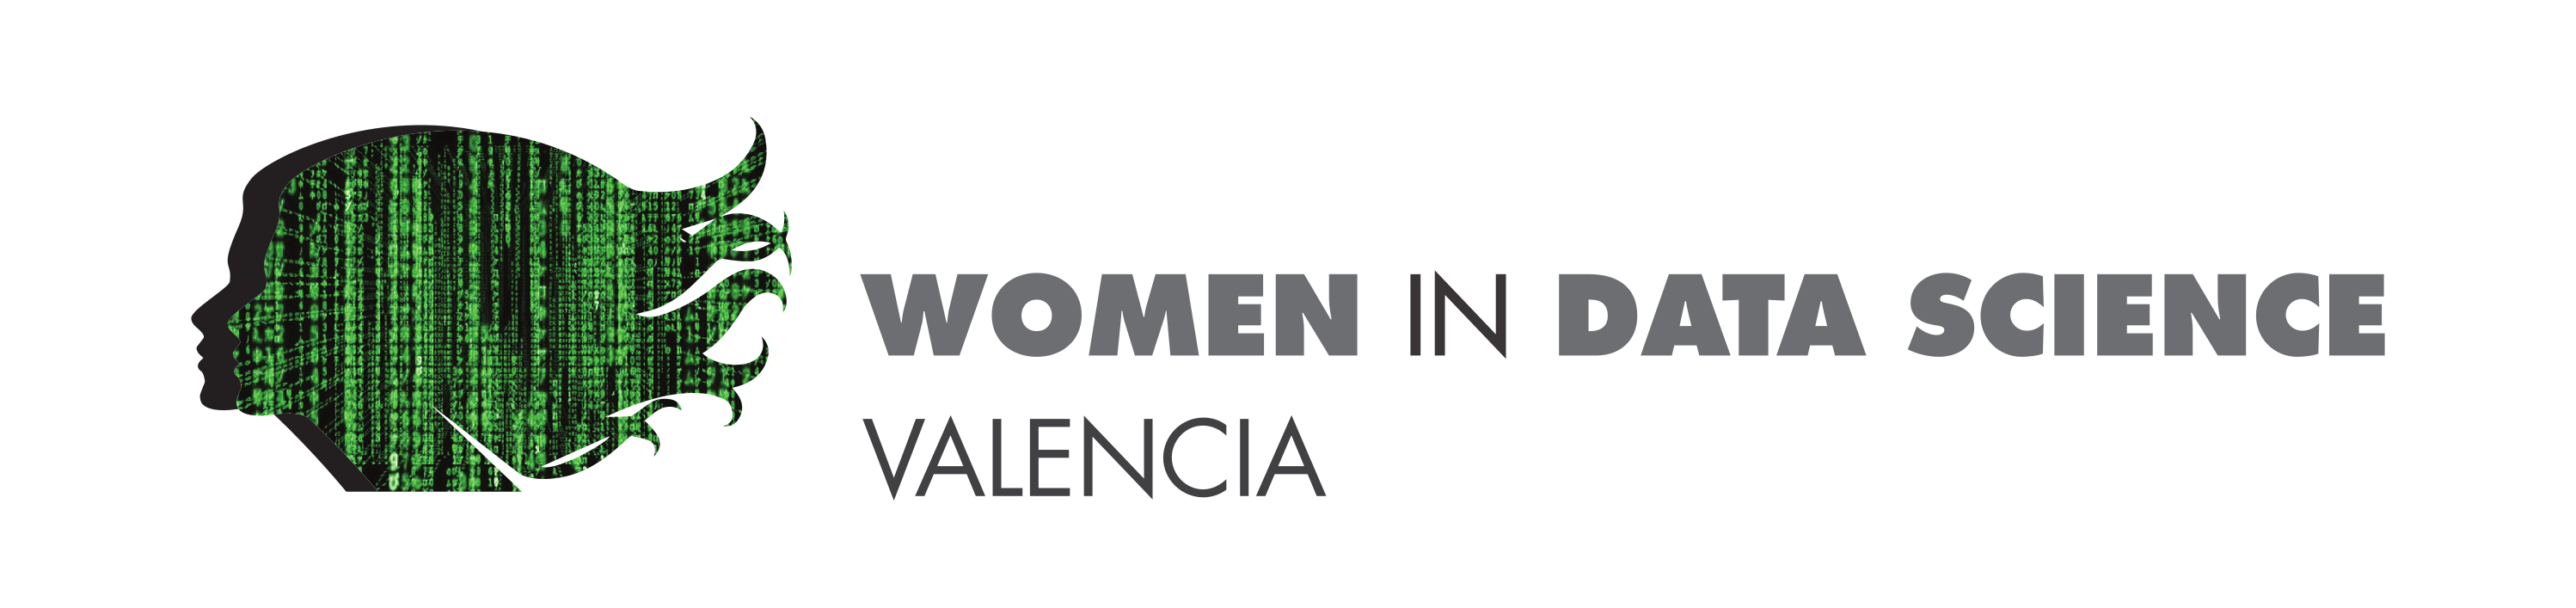 Logotipo Women in Data Science